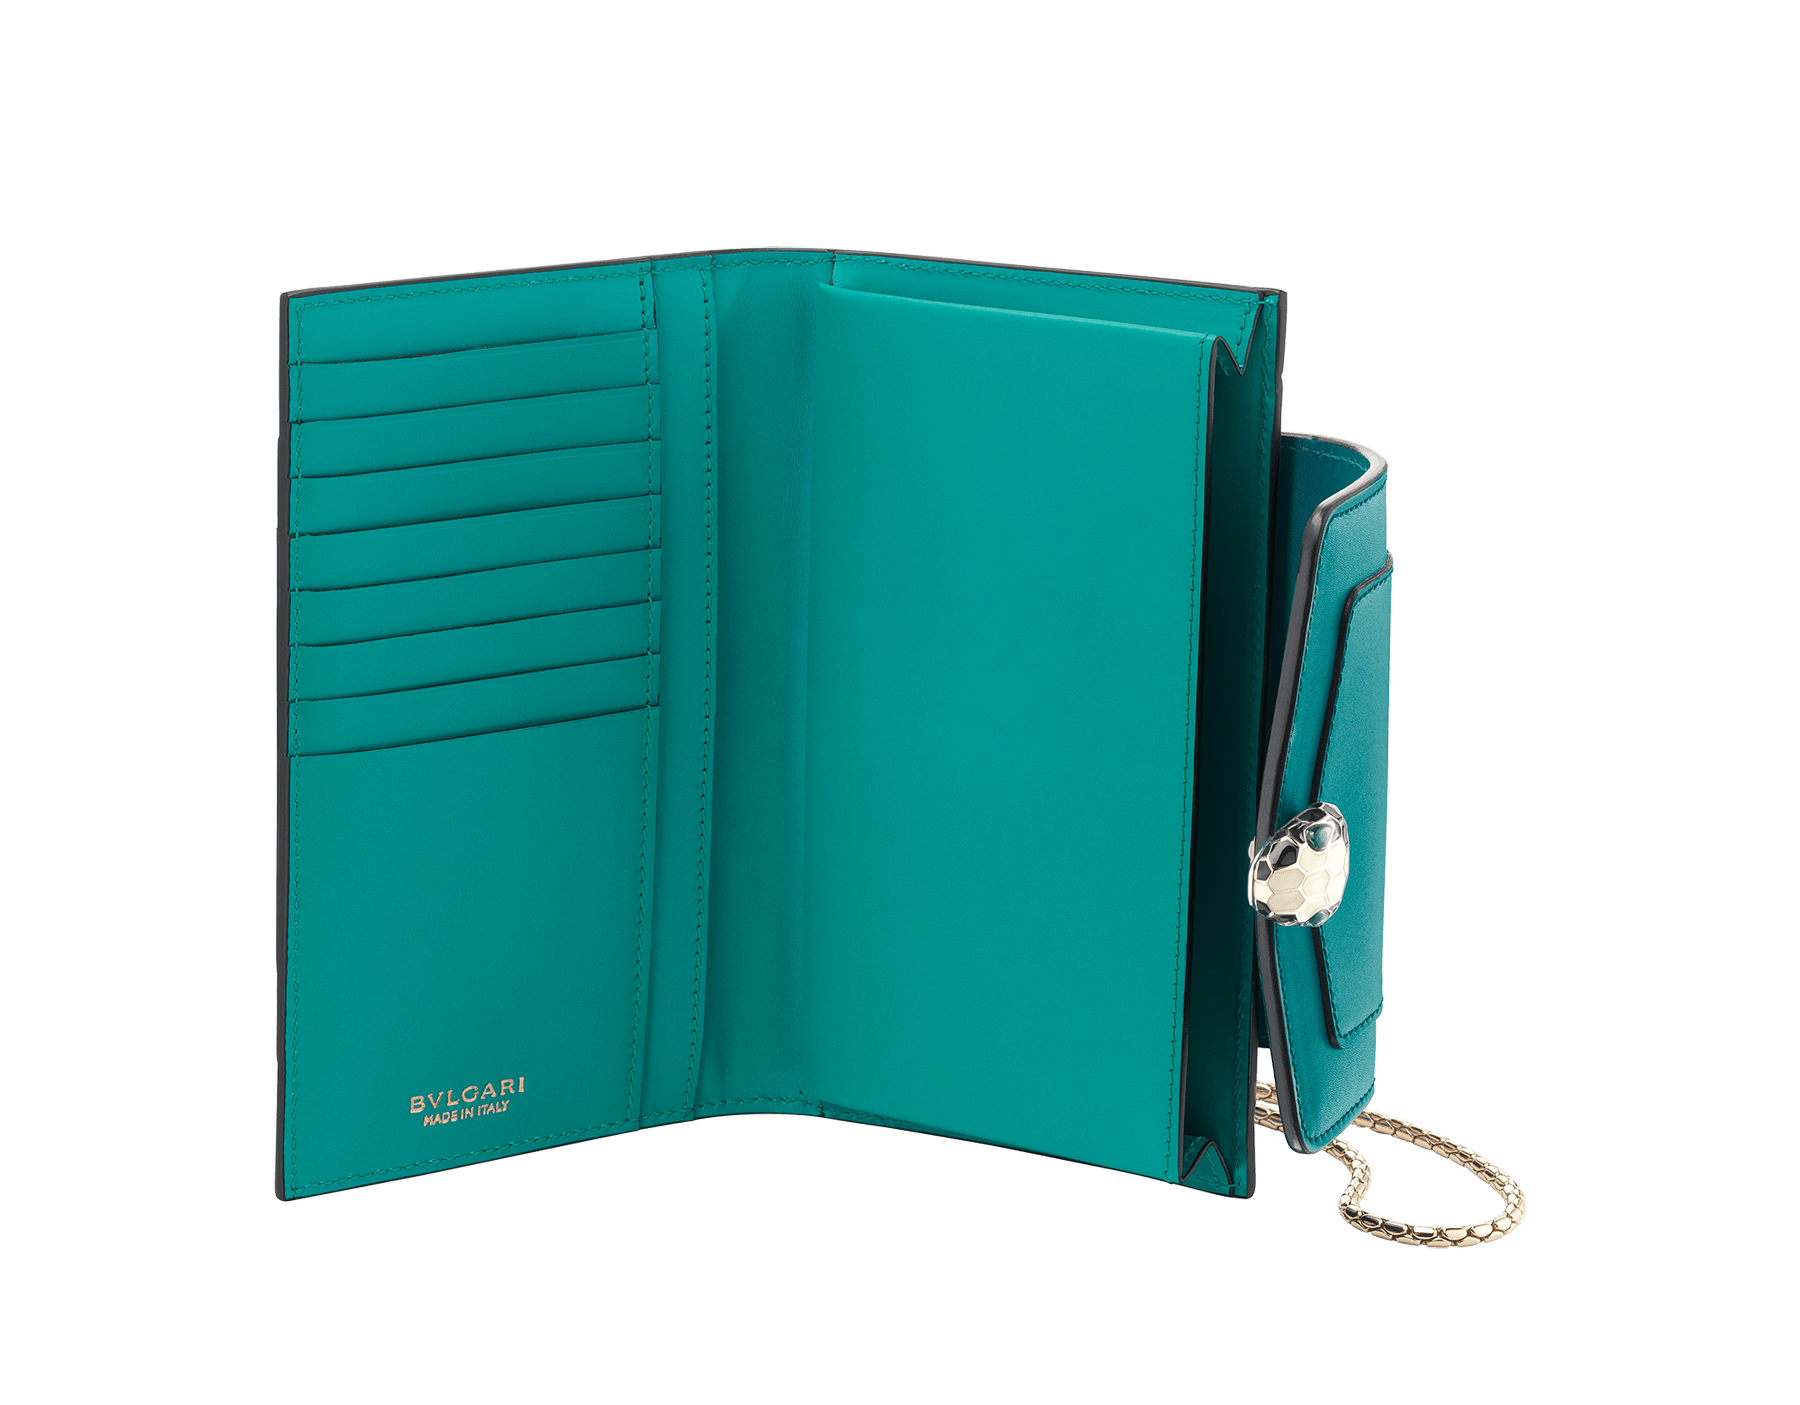 Techno-hybrid Serpenti Forever in deep jade calf leather, with tropical tourquoise calf leather lining. Brass light gold plated Serpenti head stud closure in black and white enamel, with green enamel eyes. 288026 image 2